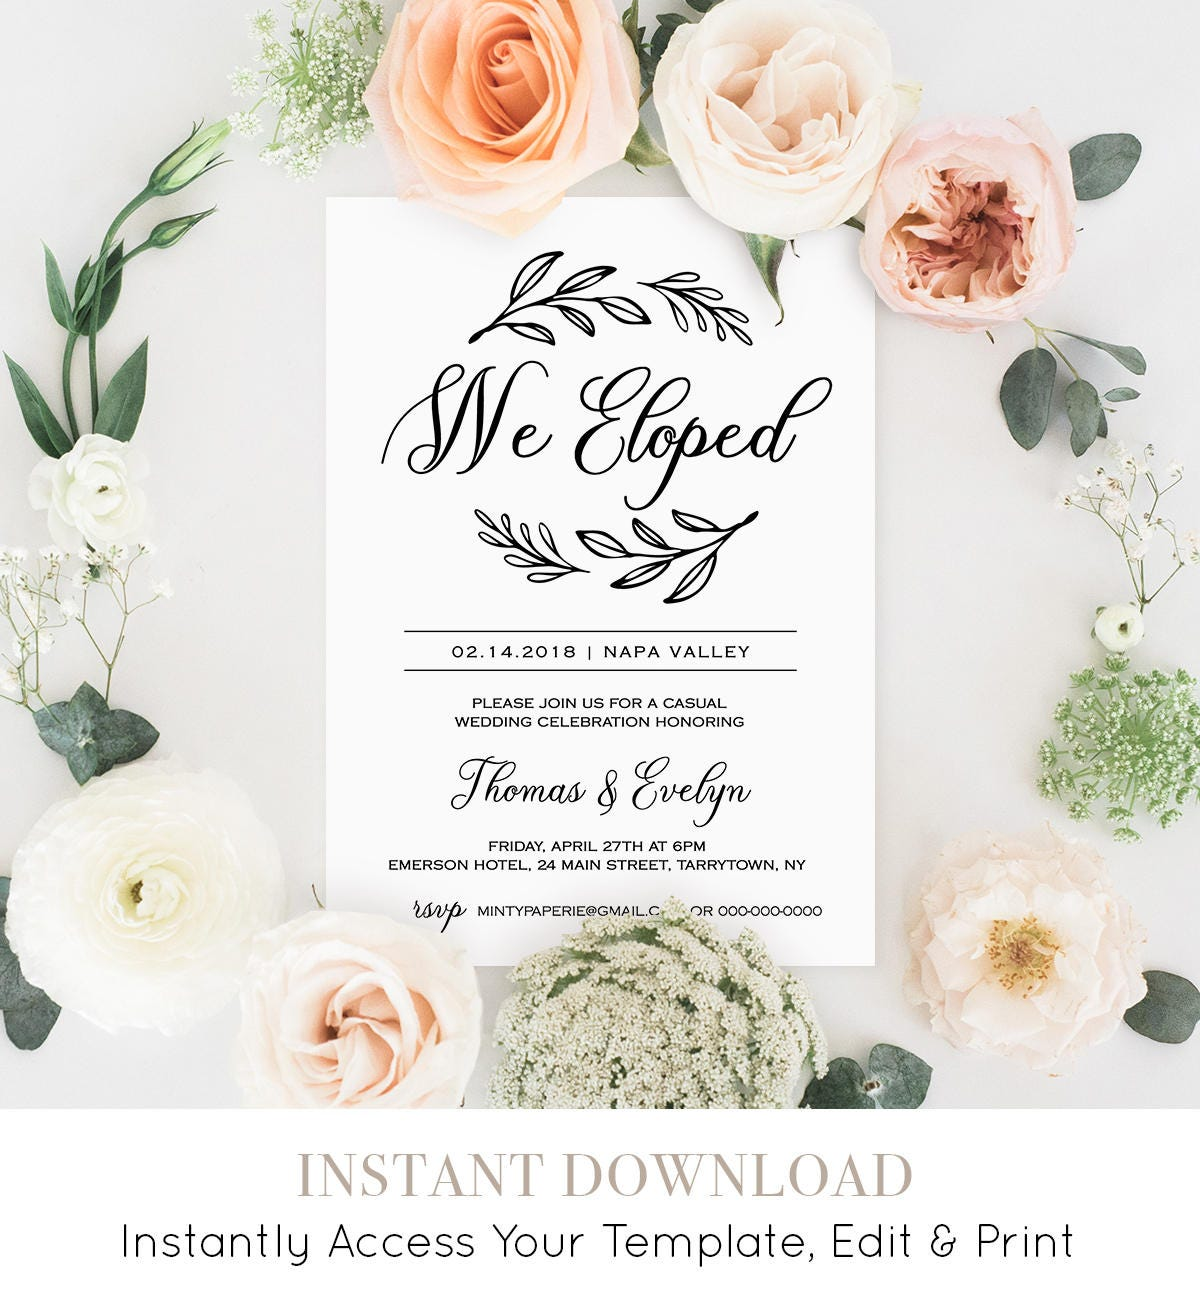 We Eloped Invitation Template Printable Elopement Announcement Rustic Wedding Reception Party Instant Download Fully Editable 027 107EL